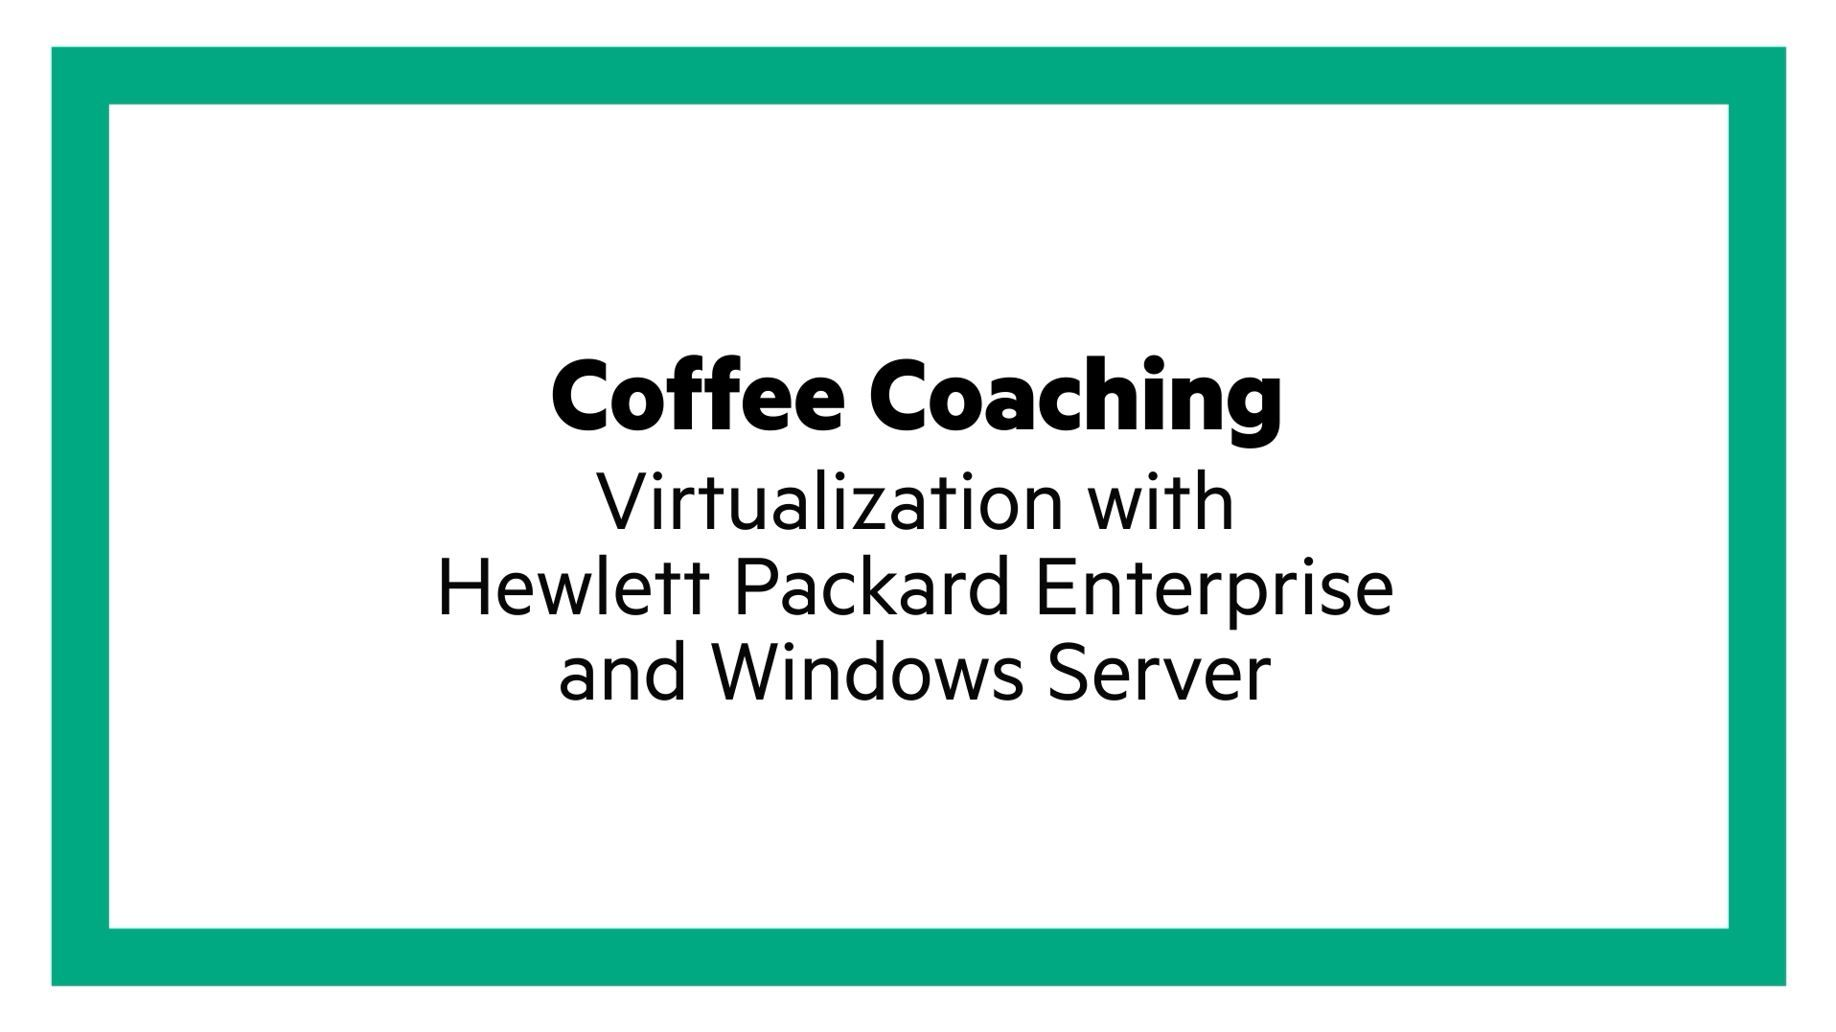 Virtualization with HPE and Windows Server.JPG